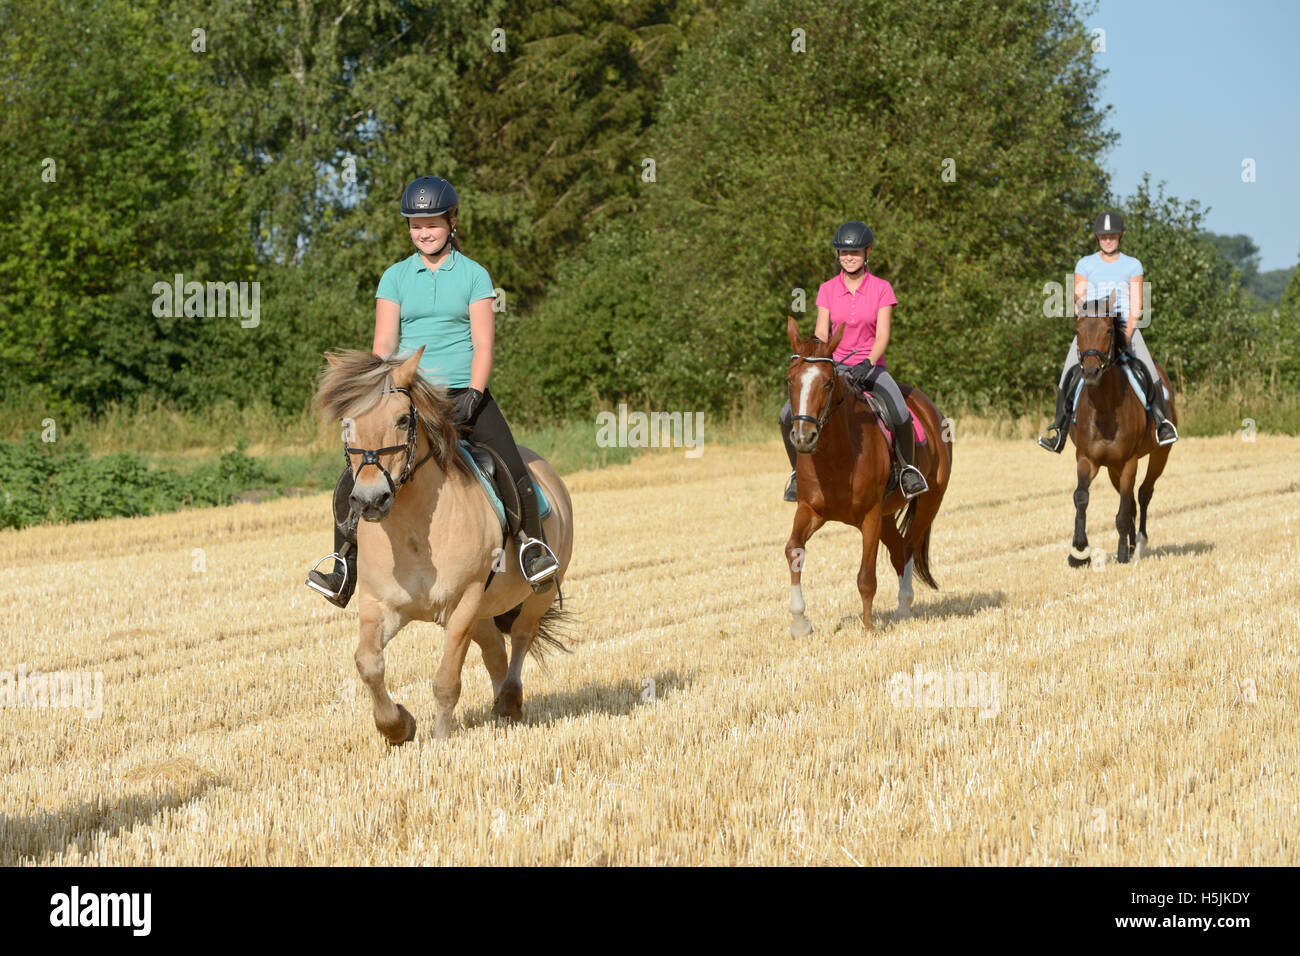 Three young riders on horseback riding in a stubble field - Stock Image